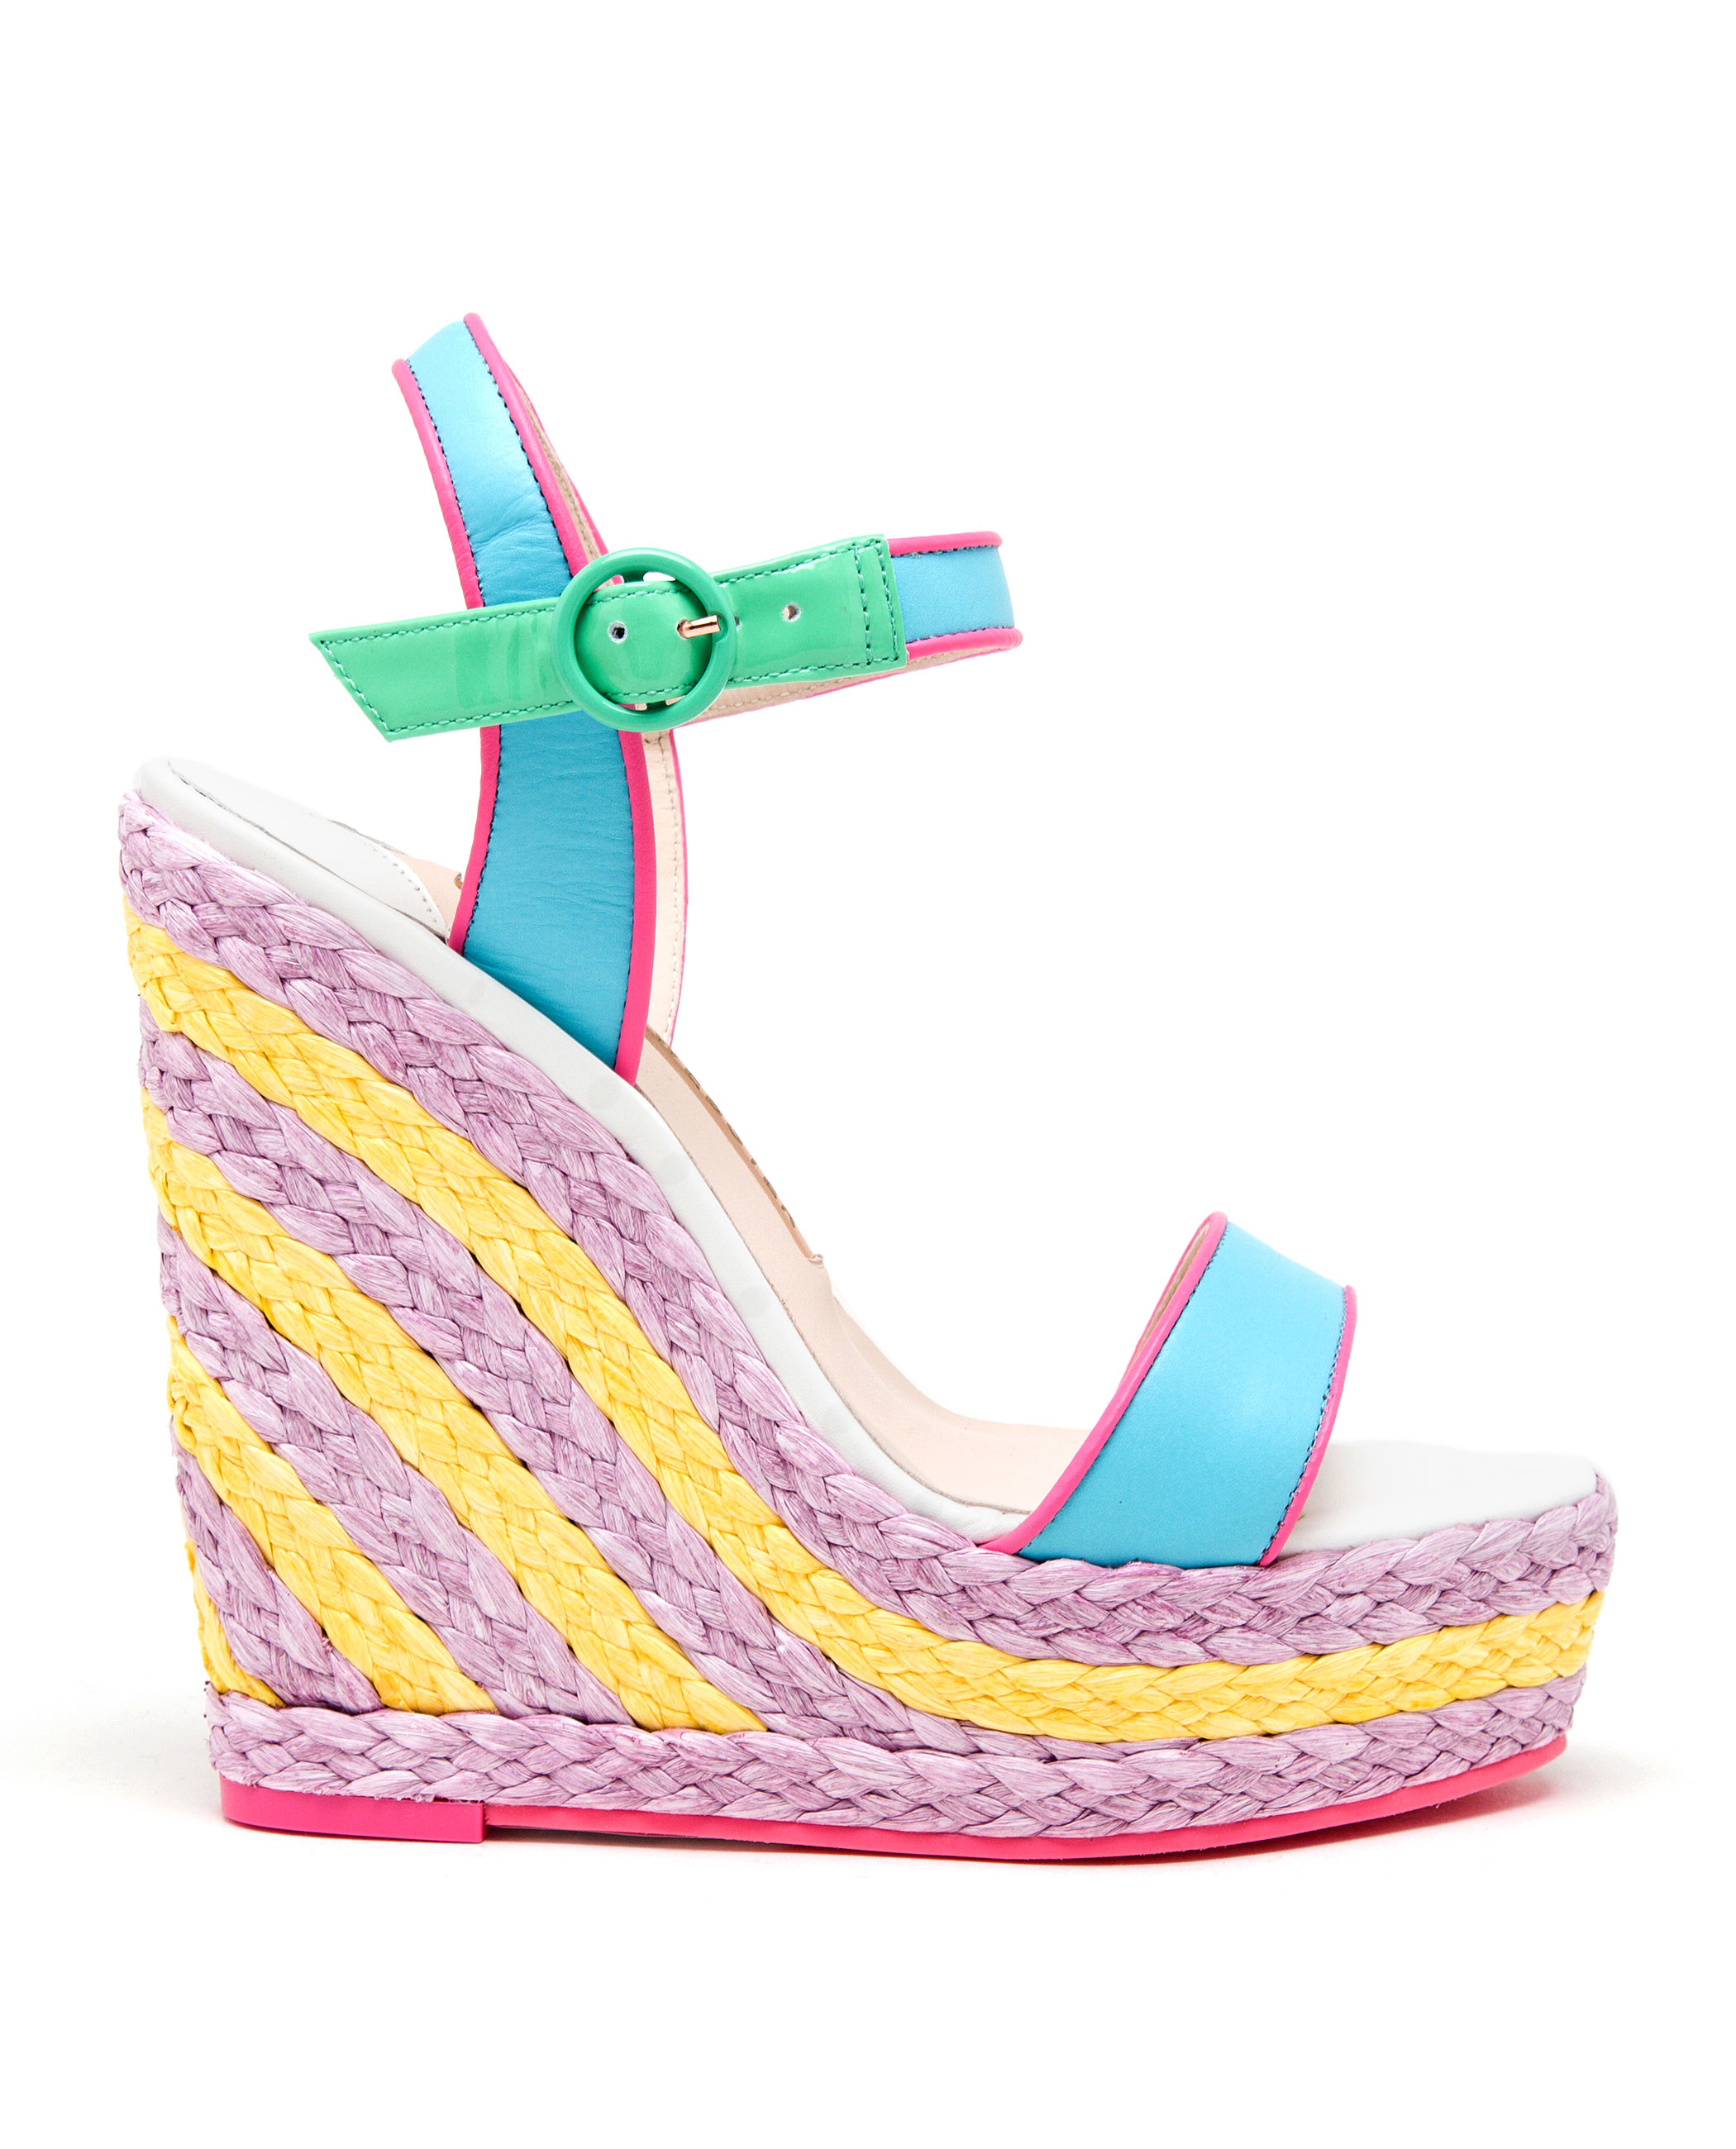 Sophia Webster Lucita Malibu Wedge Sandals in Blue - Lyst